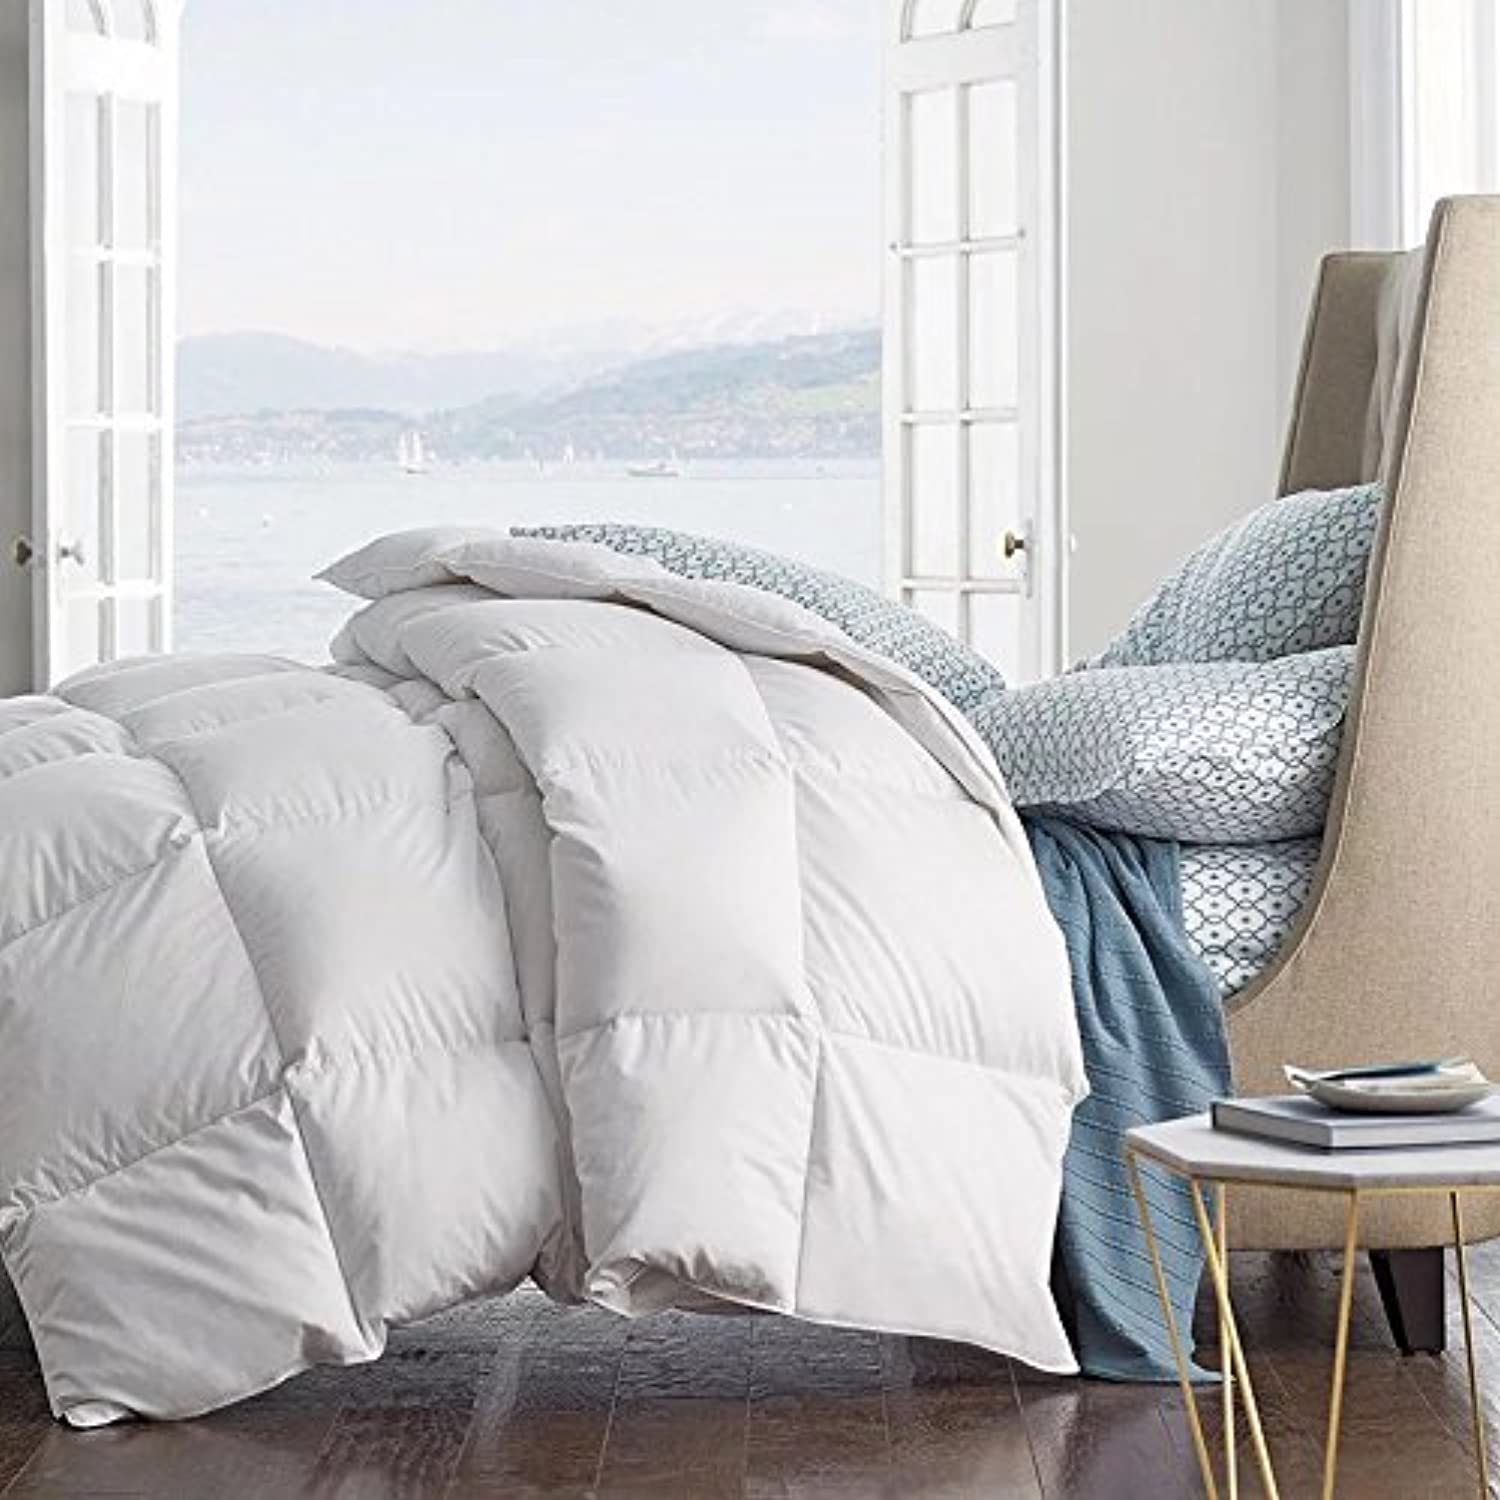 pink FEATHER Summer Spring Down Comforter Light Weight Duvet Insert Solid Fluffy Soft Warm Hypoallergenic Oversize TwinXL Full Queen King Cal King-White (King 106x90inch, White)